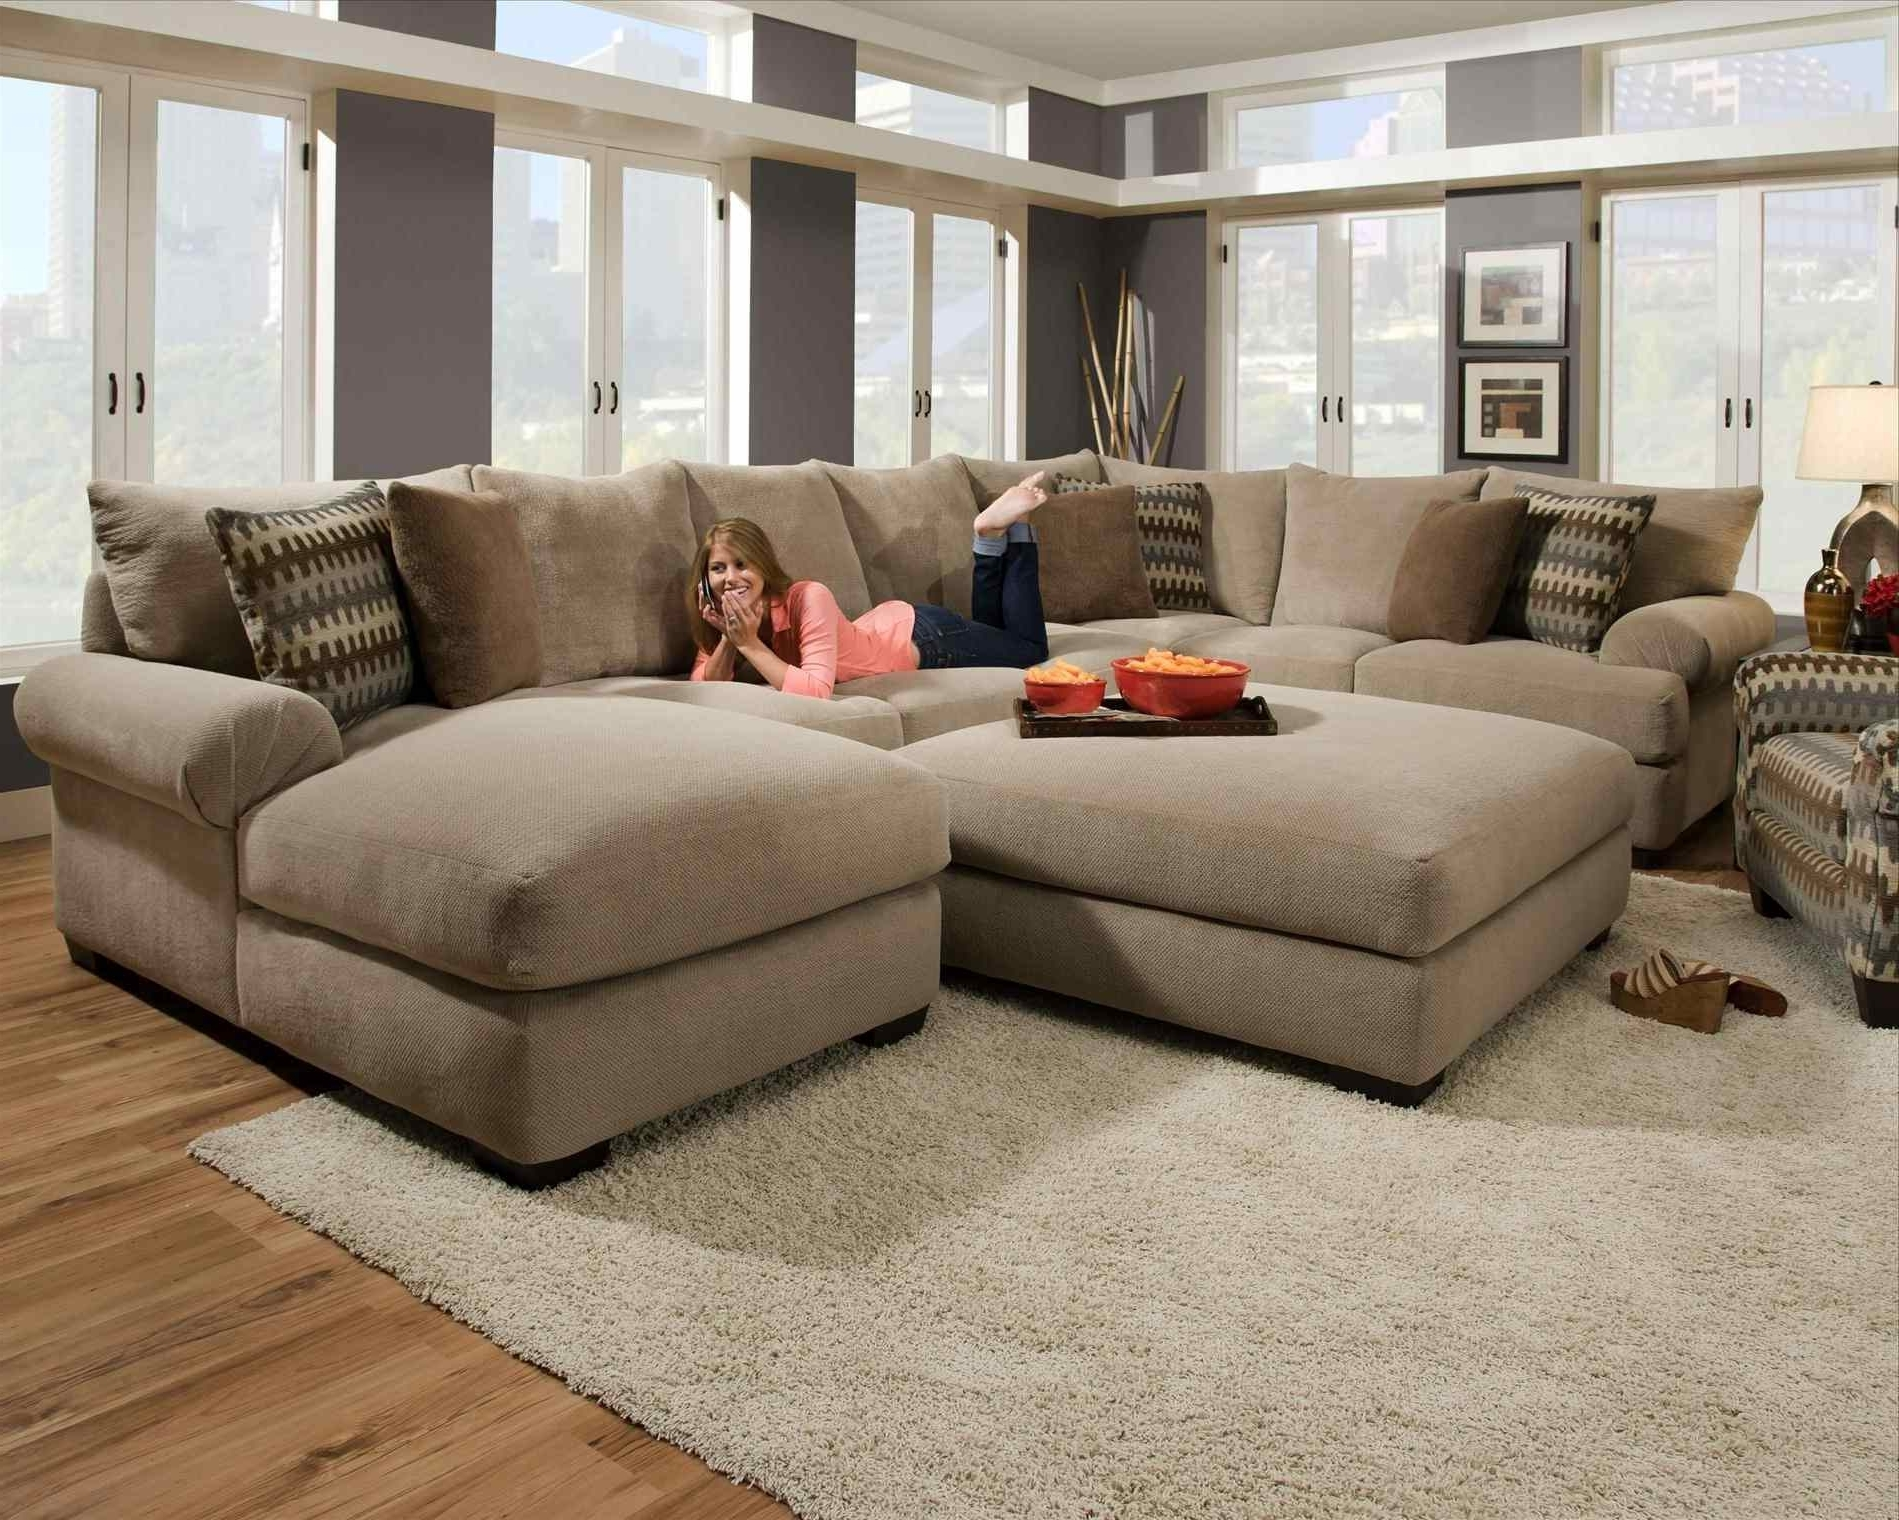 Image Gallery Of Cozy Sectional Sofas